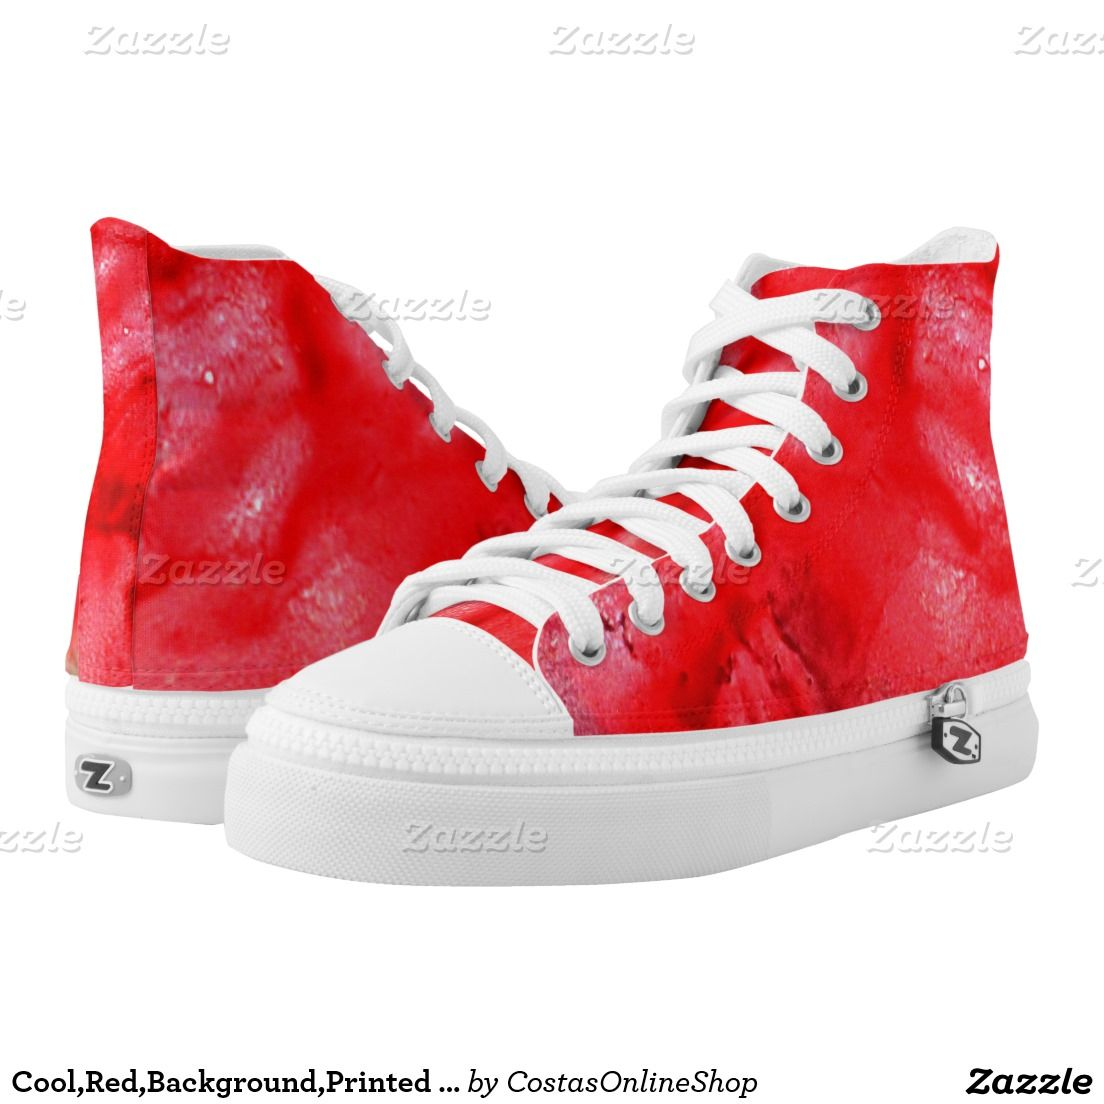 Cool,Red,Background,Printed Shoes Printed Shoes,custom, shoe, high, top, printed, cool, pattern, fashion, unique, stylish, images, abstract